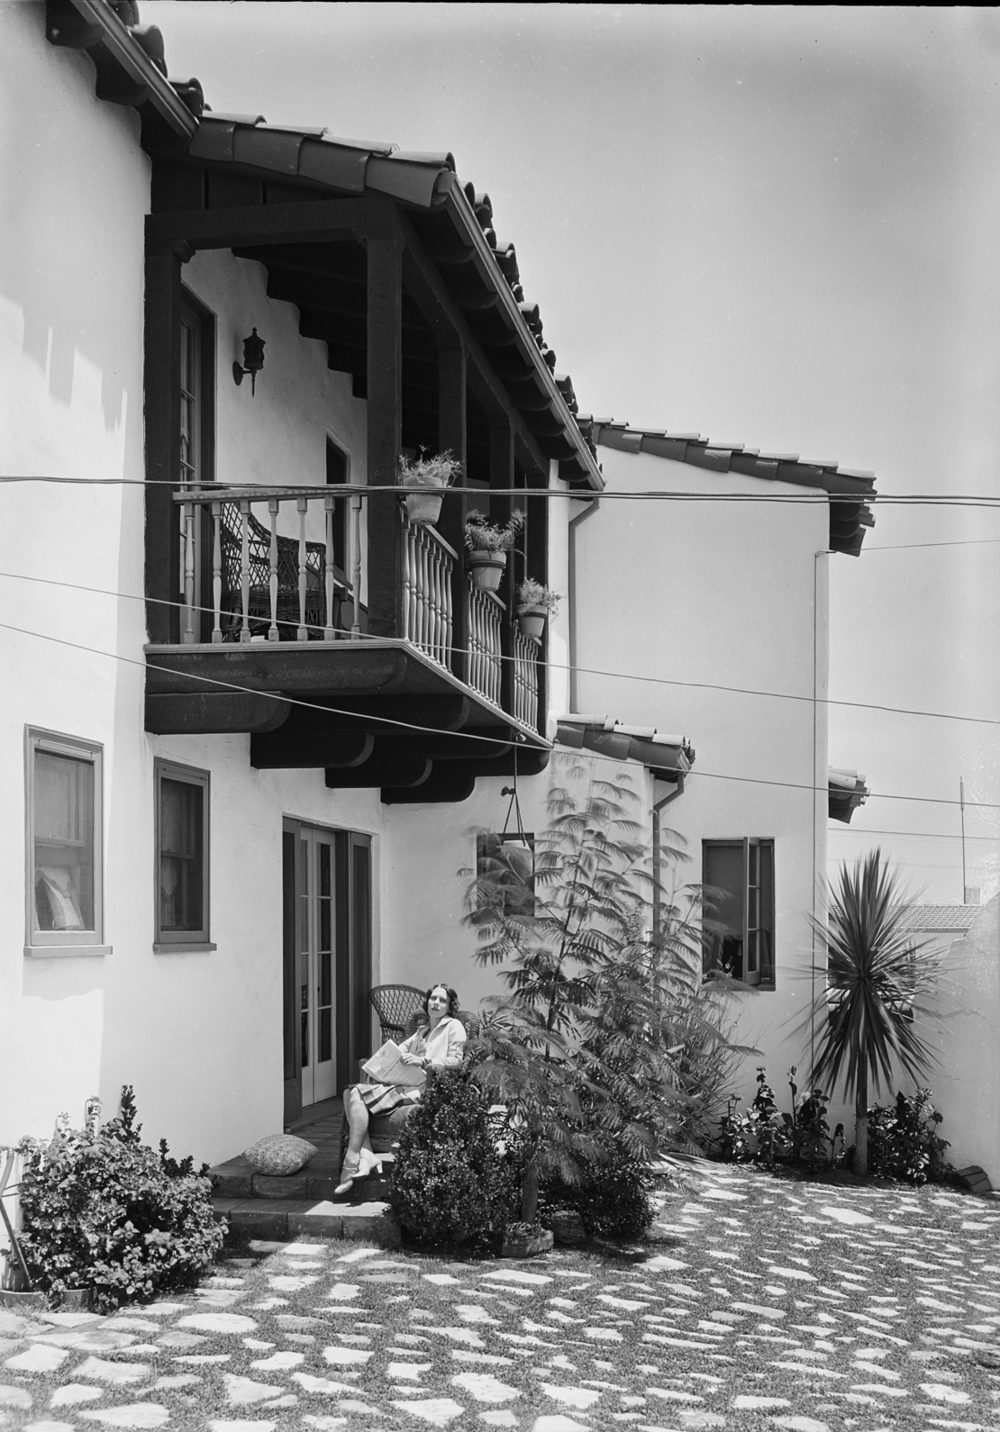 Peyolas_etc_in_View_Park_Southern_California_Los_Angeles_CA_1929_image_3.jpg